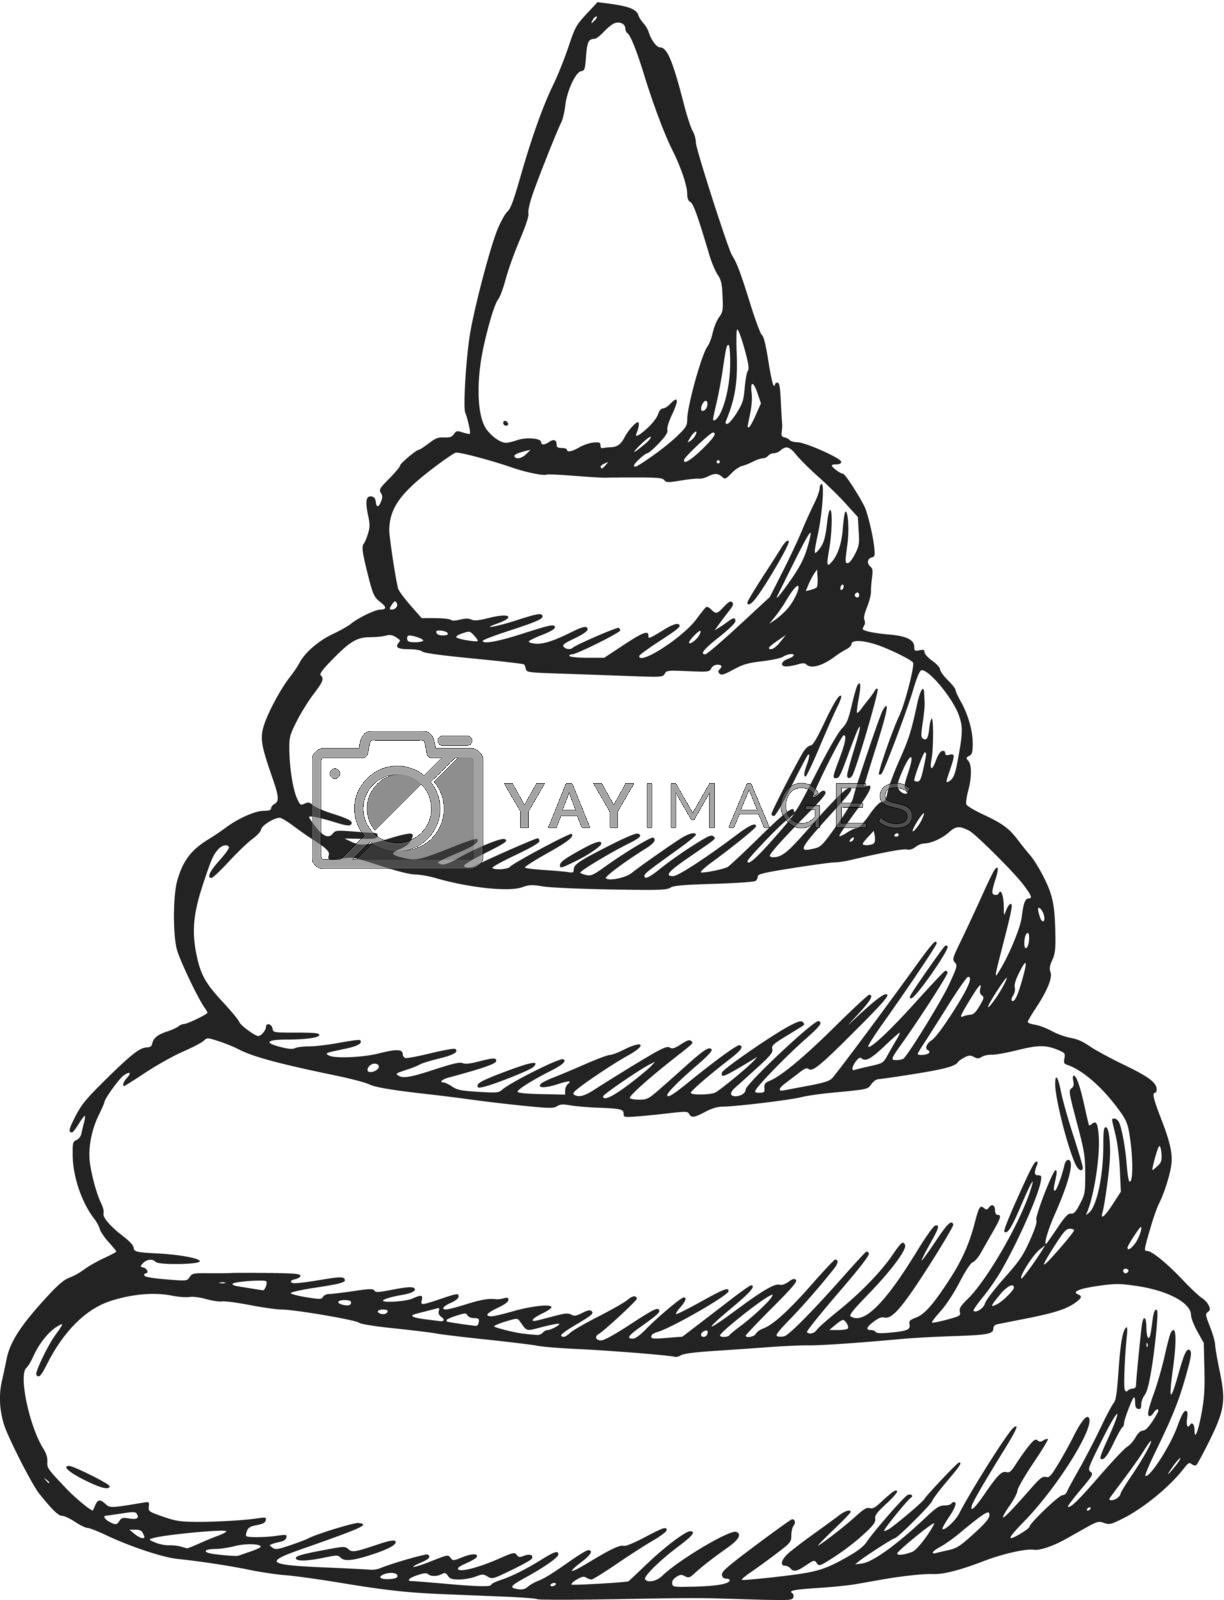 hand drawn, sketch illustration of toy colored pyramid